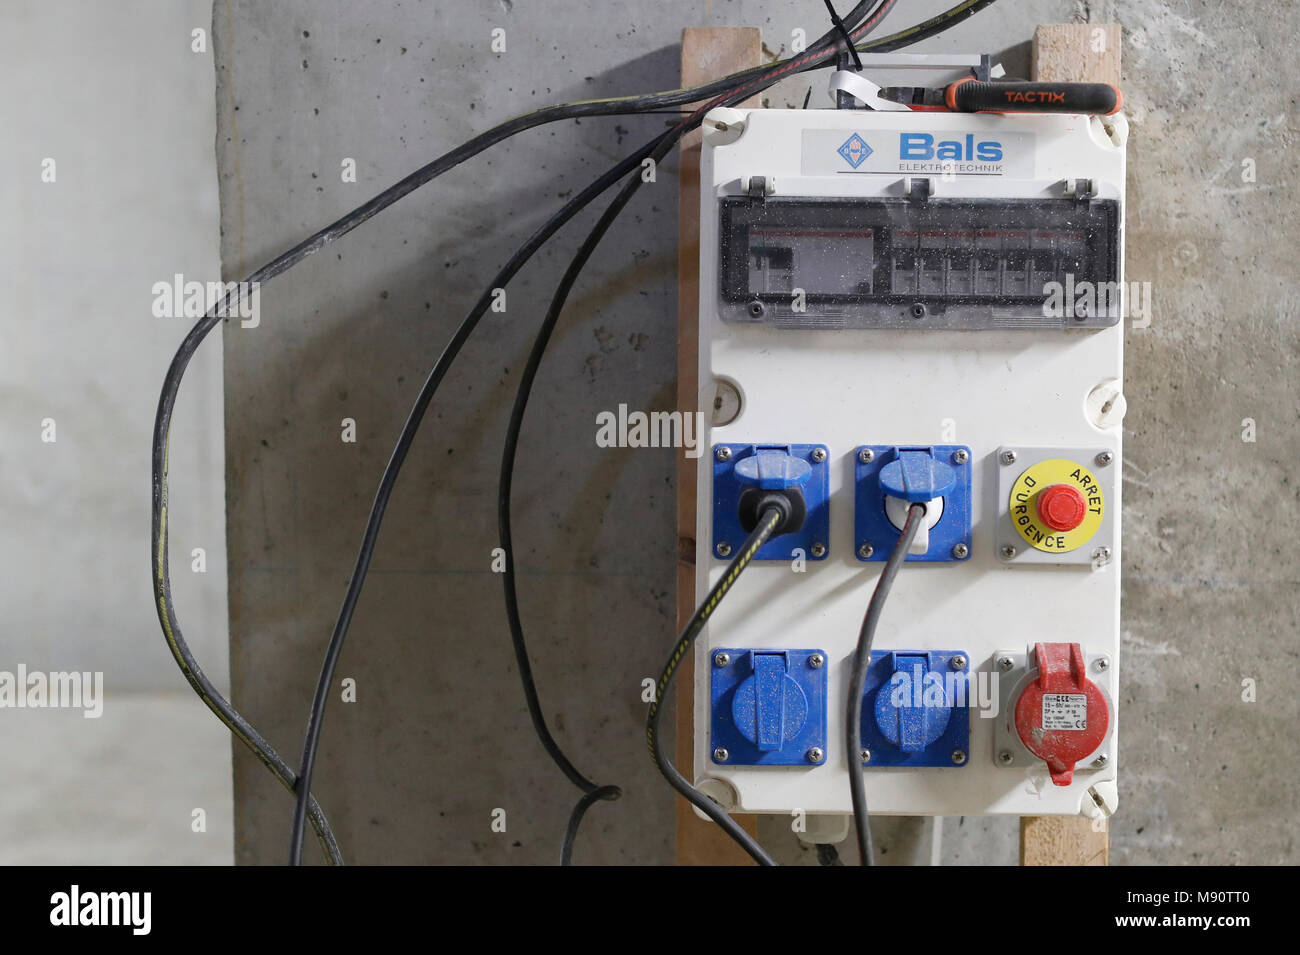 Superb House Under Construction Electric Board Stock Photo 177655072 Alamy Wiring 101 Taclepimsautoservicenl